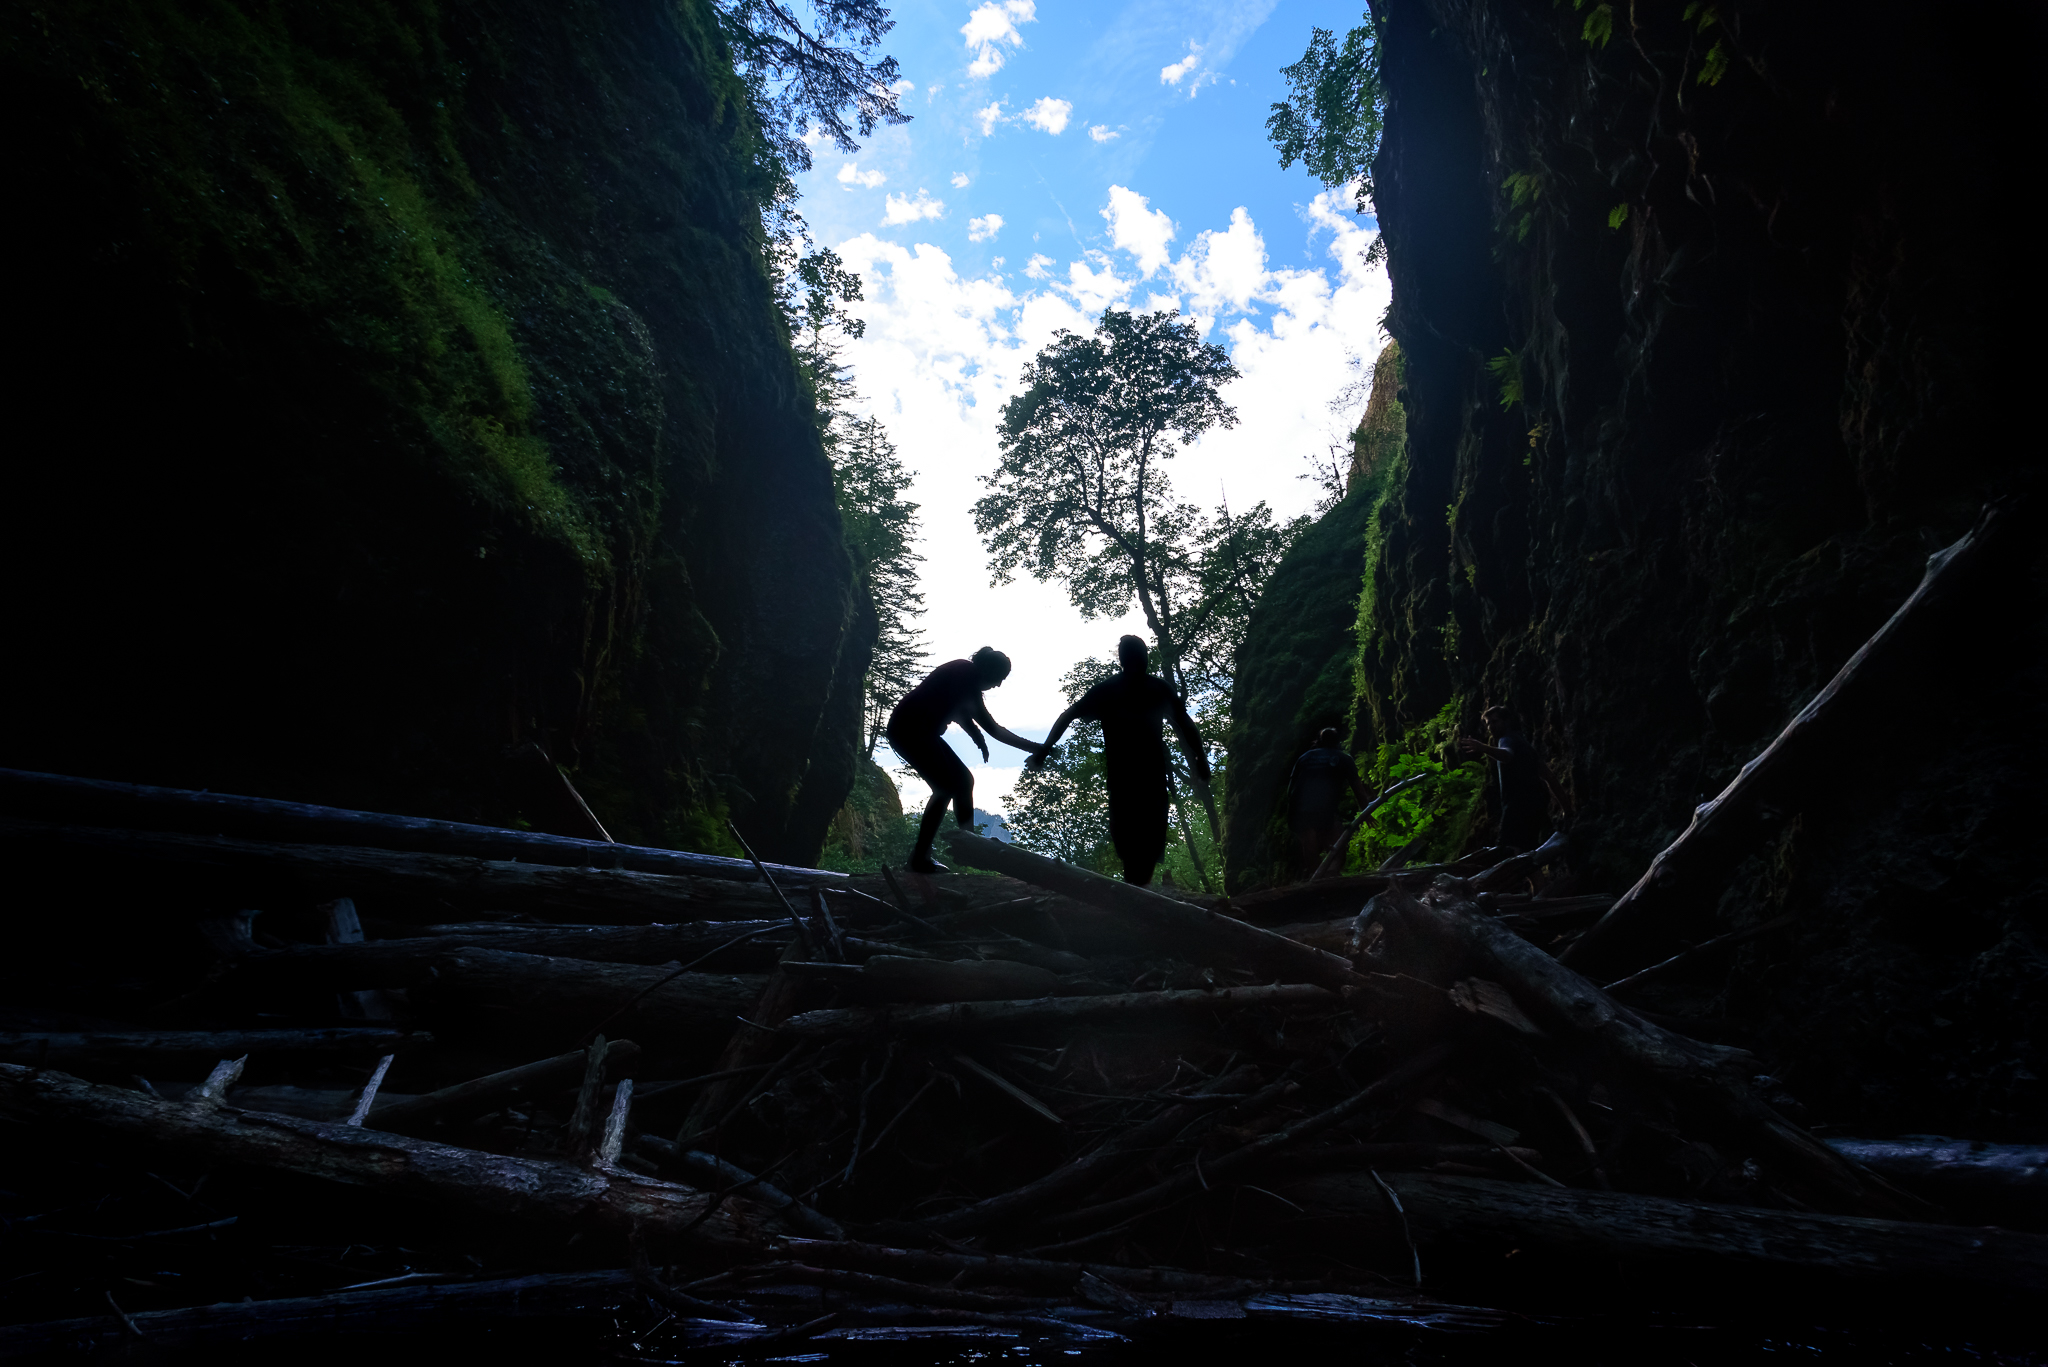 While short, the hike through Oneonta Gorge to the waterfall isn't without some challenging and slippery scrambles.